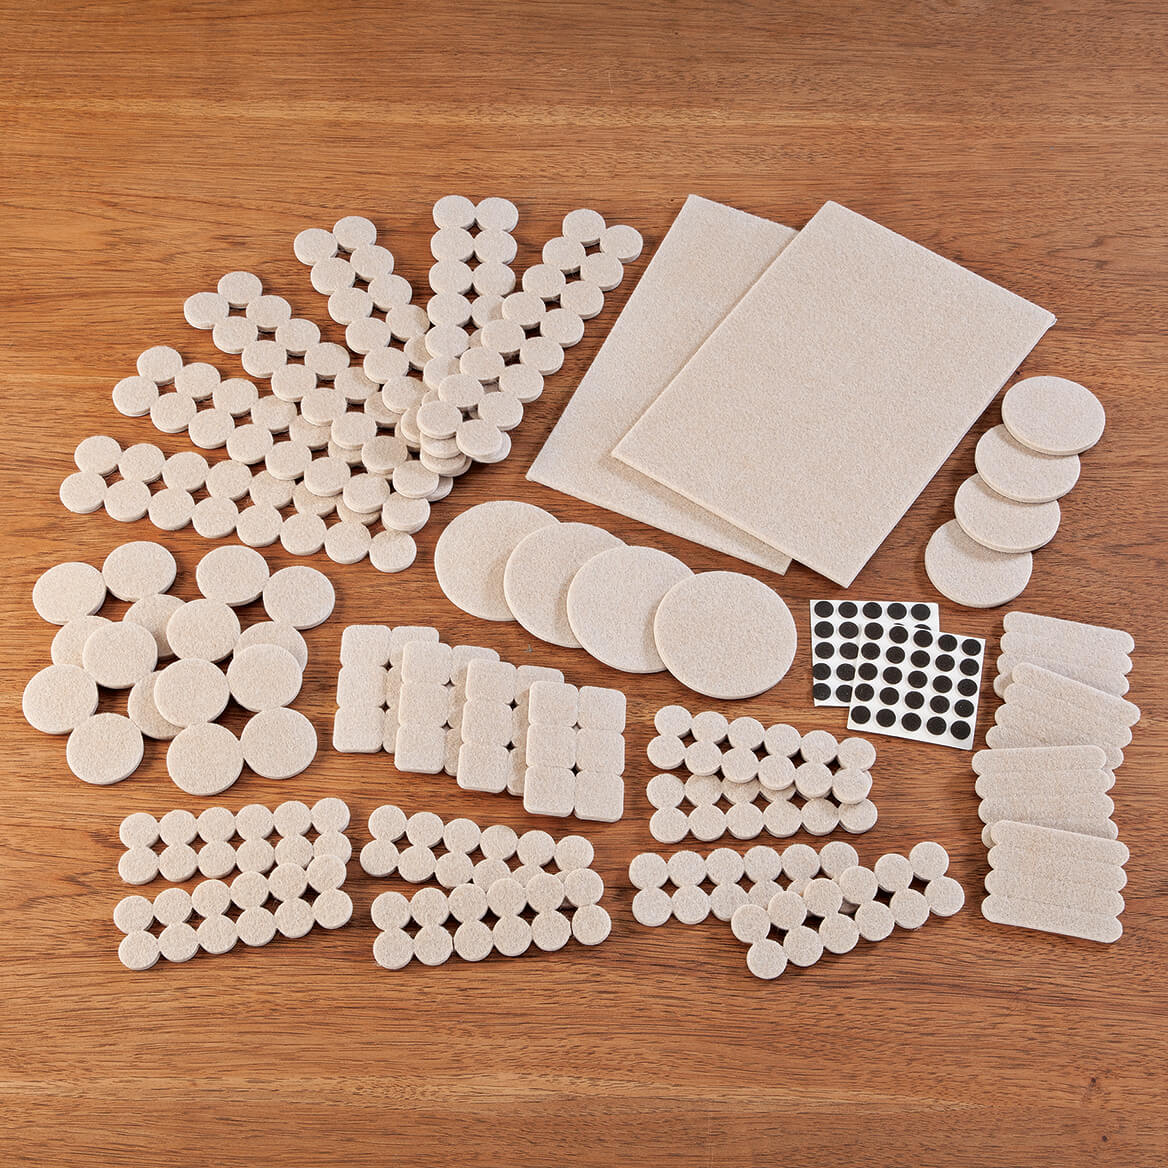 308-Piece Furniture Pad Variety Pack by LivingSURE™-366048